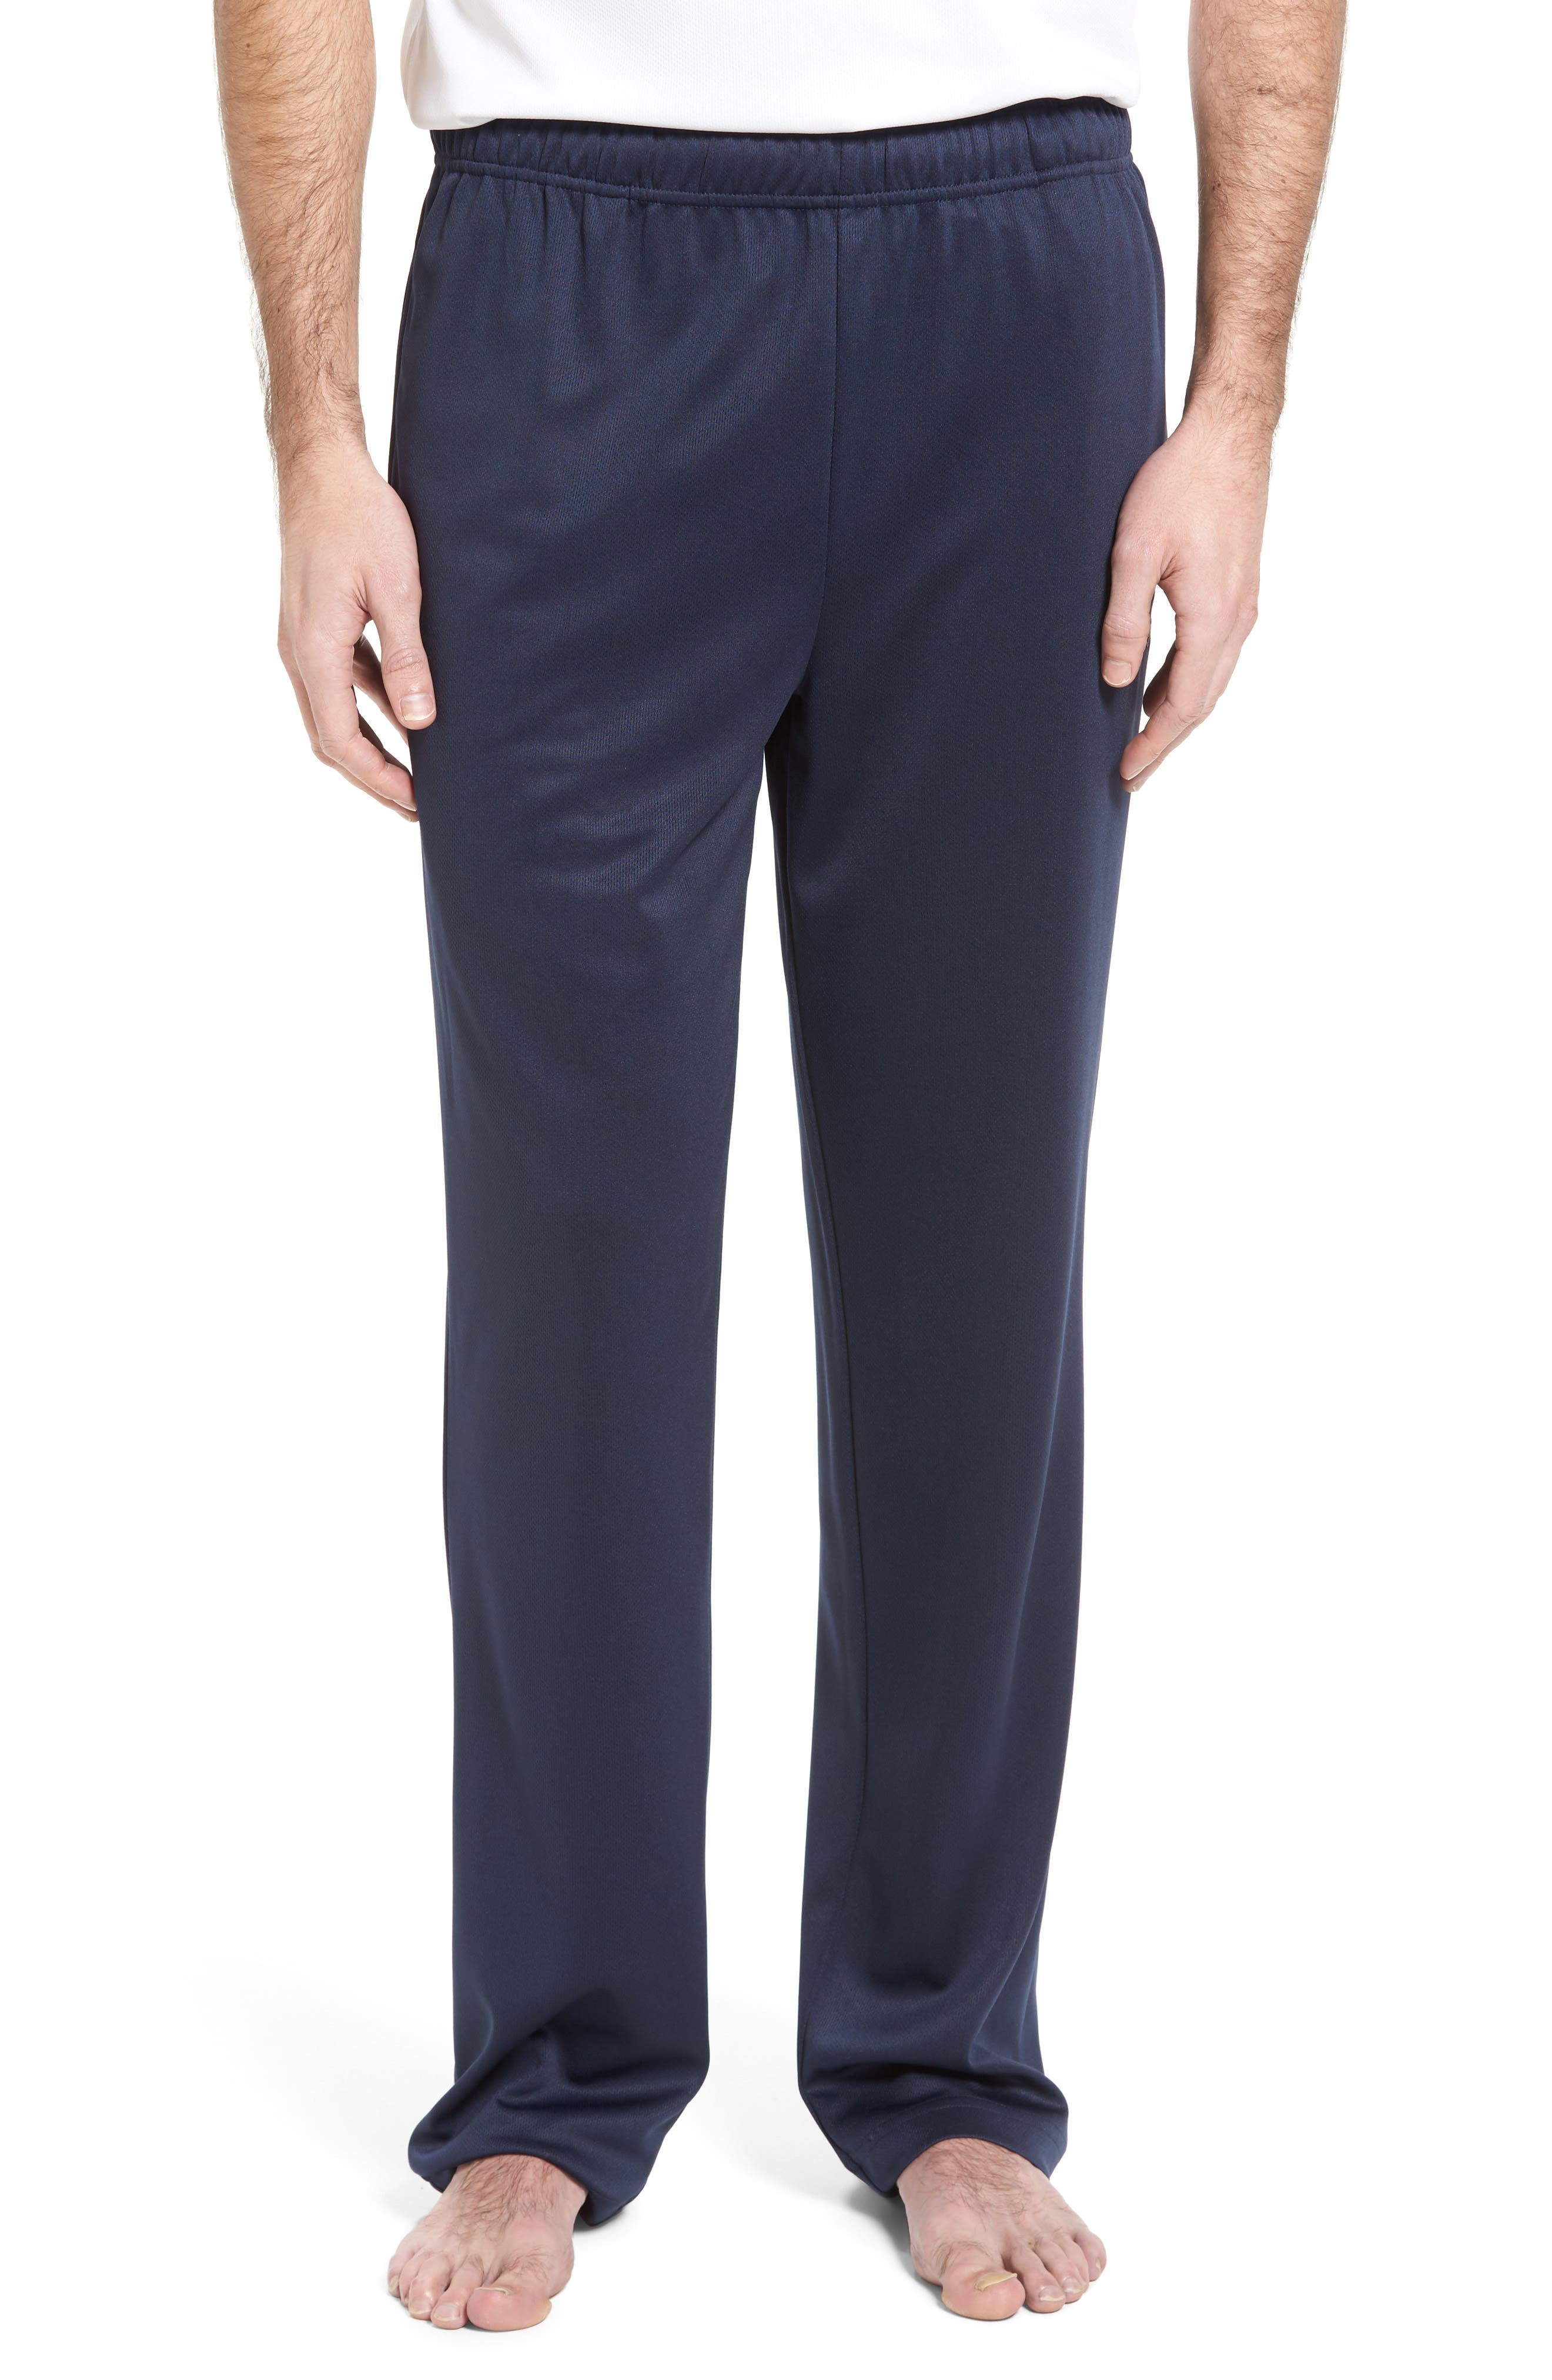 Work Out Lounge Pants,                         Main,                         color, Navy